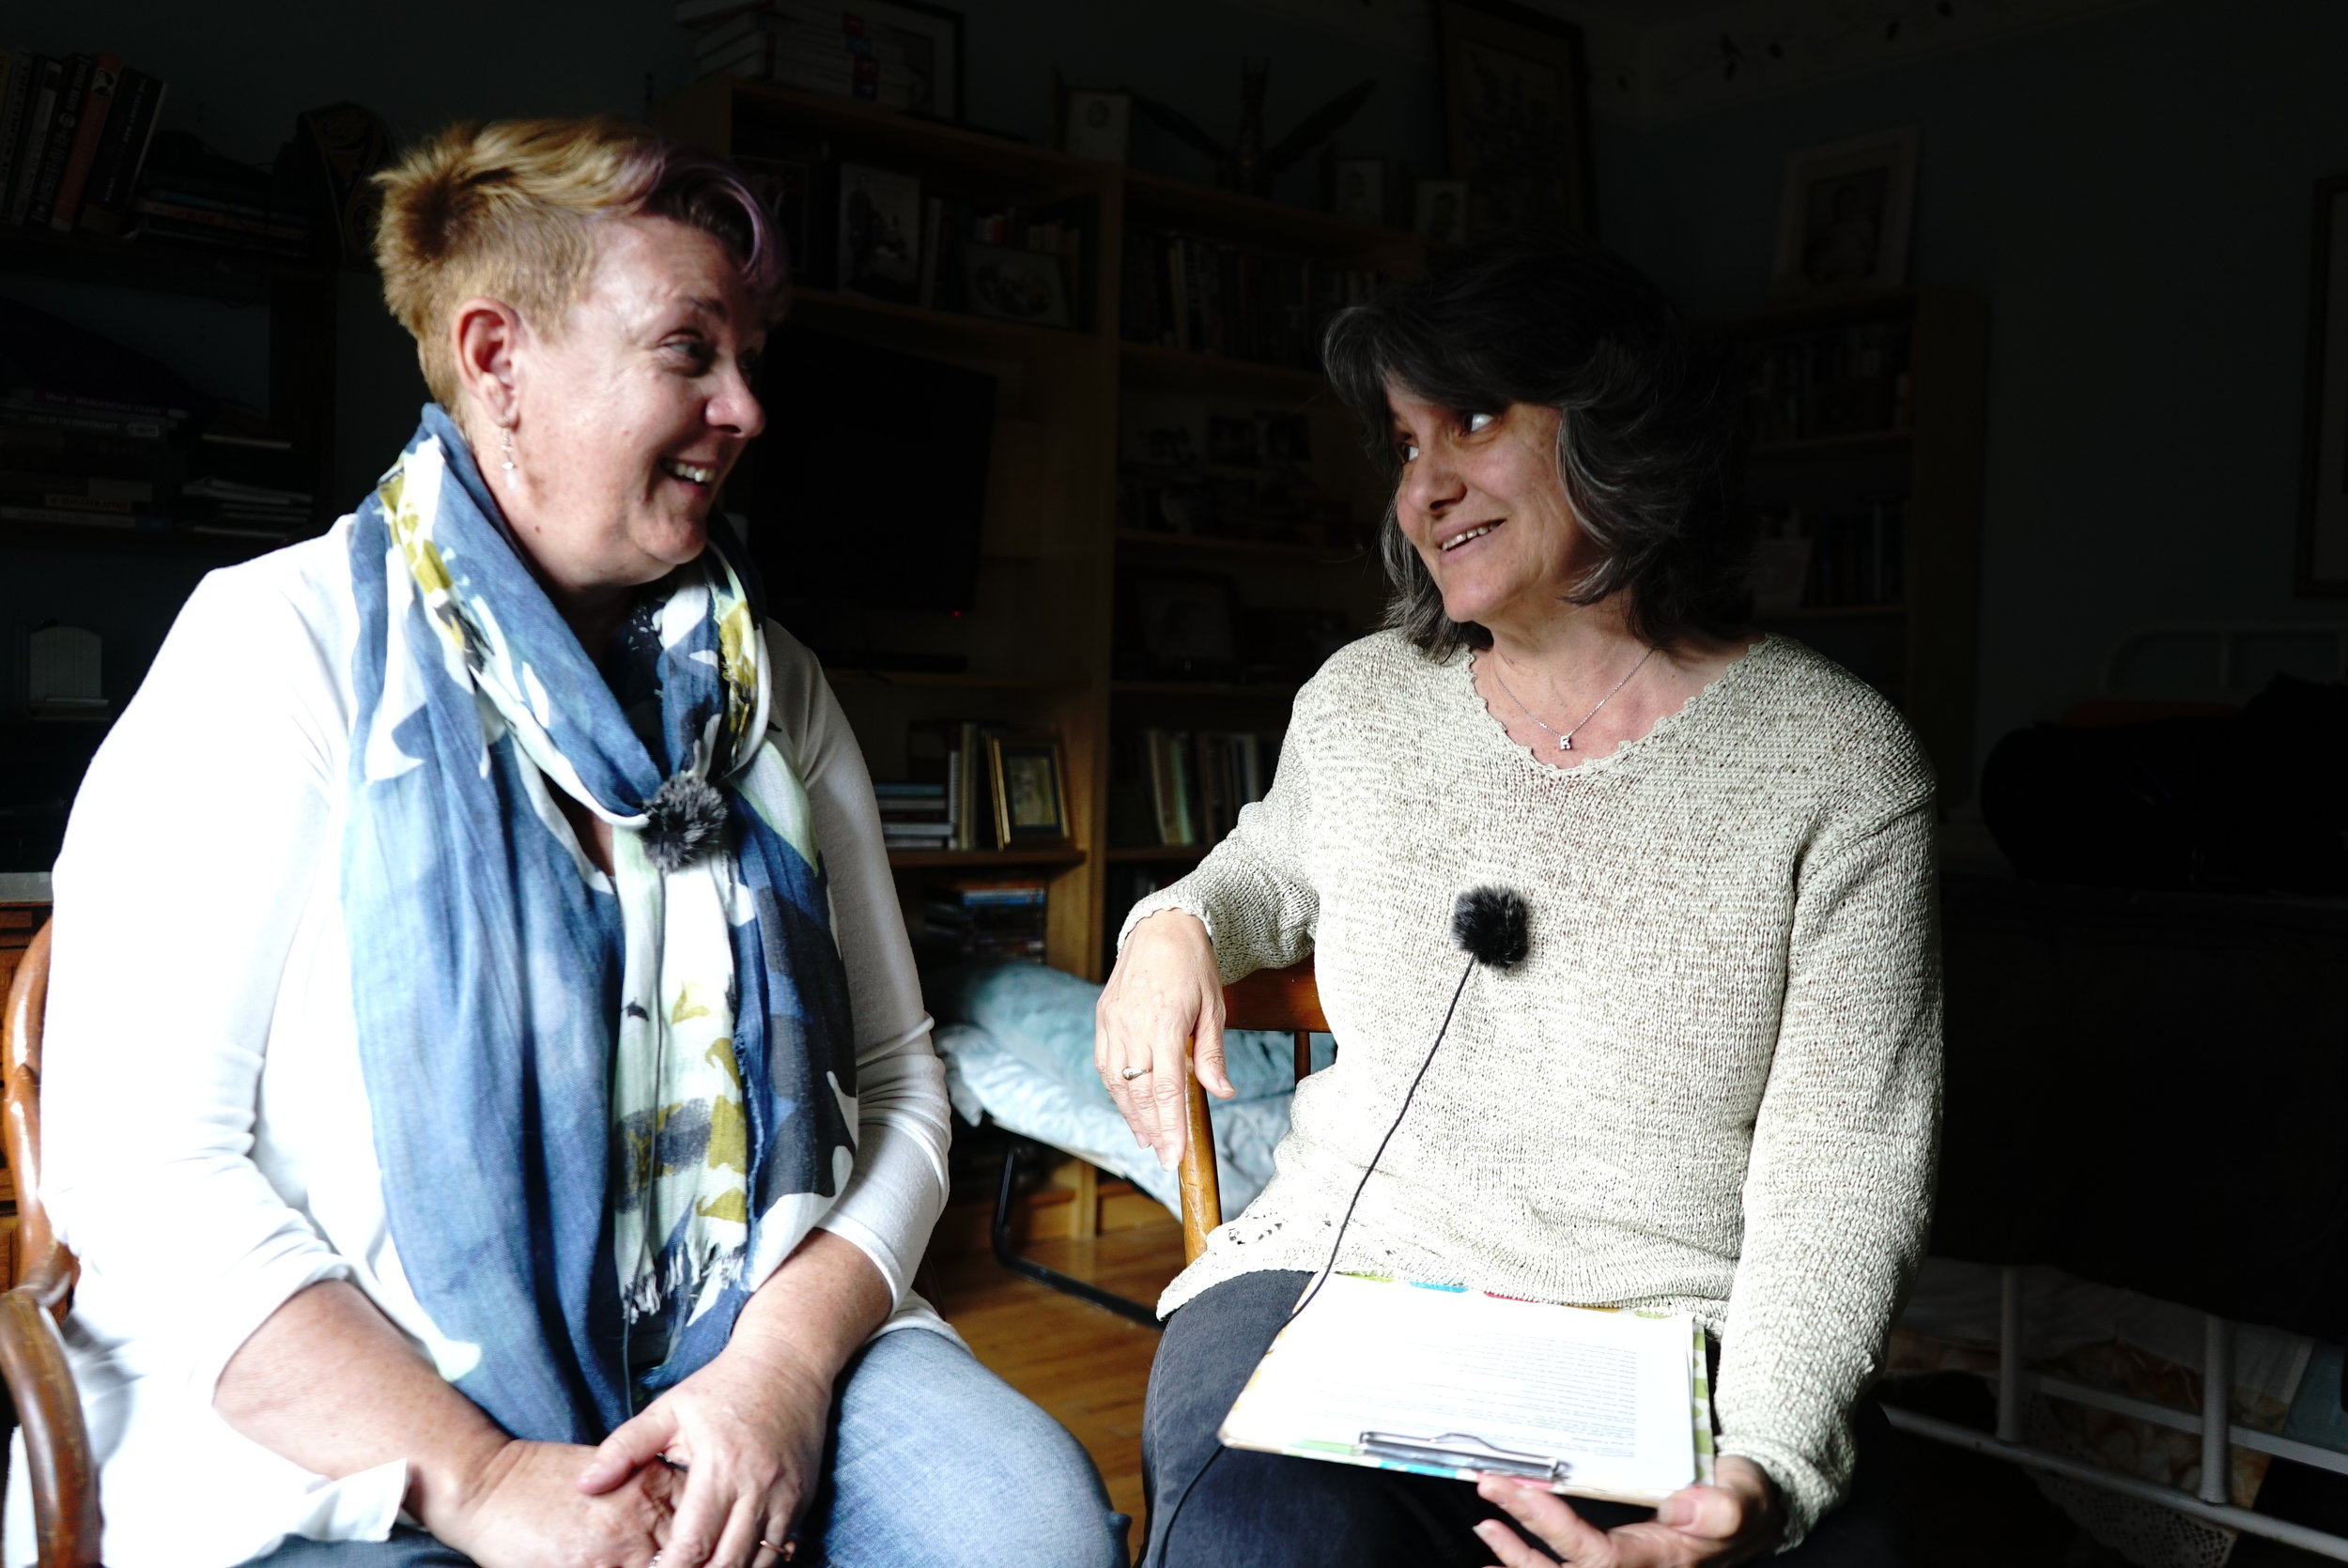 Dr. Peg Lamphier, Author and Dr. Rosanne Welch, Host, recording this Mentoris Project Podcast